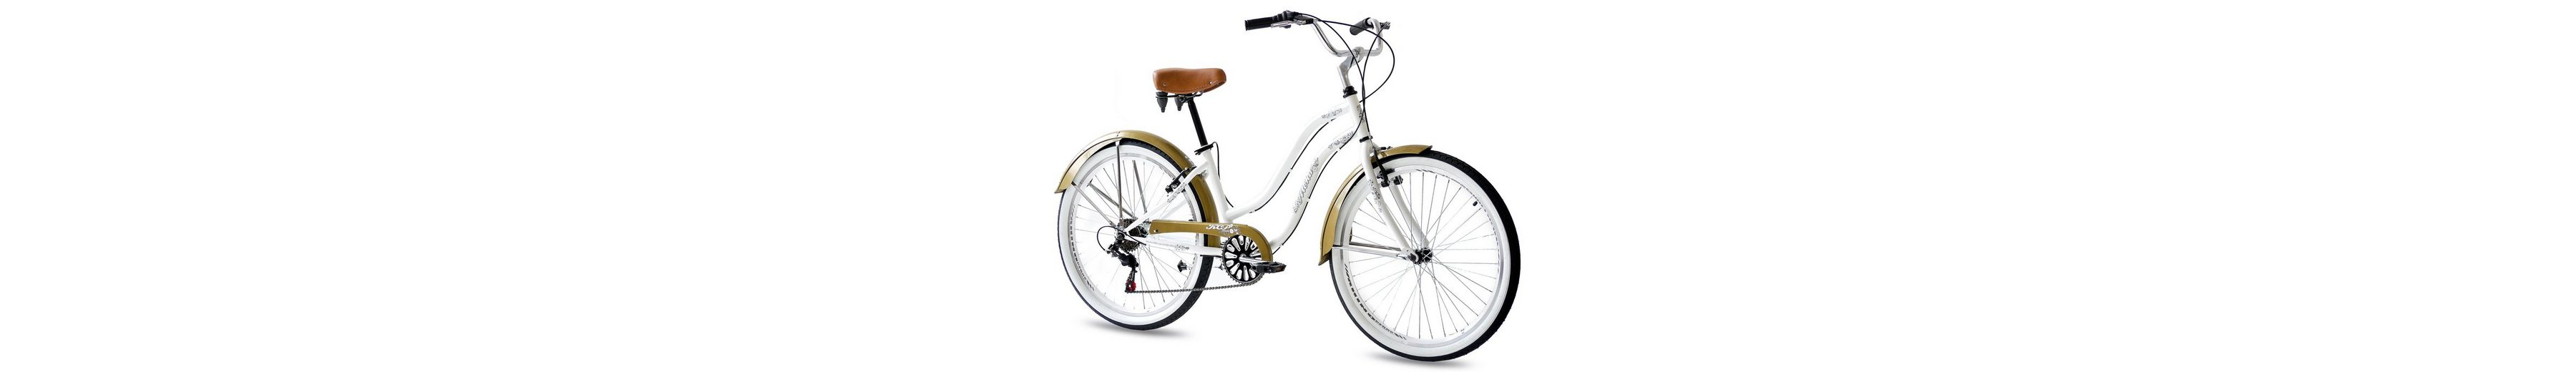 Beachcruiser »ALOHA Lady 2.0«, 26 Zoll, 6 Gang, V-Bremsen